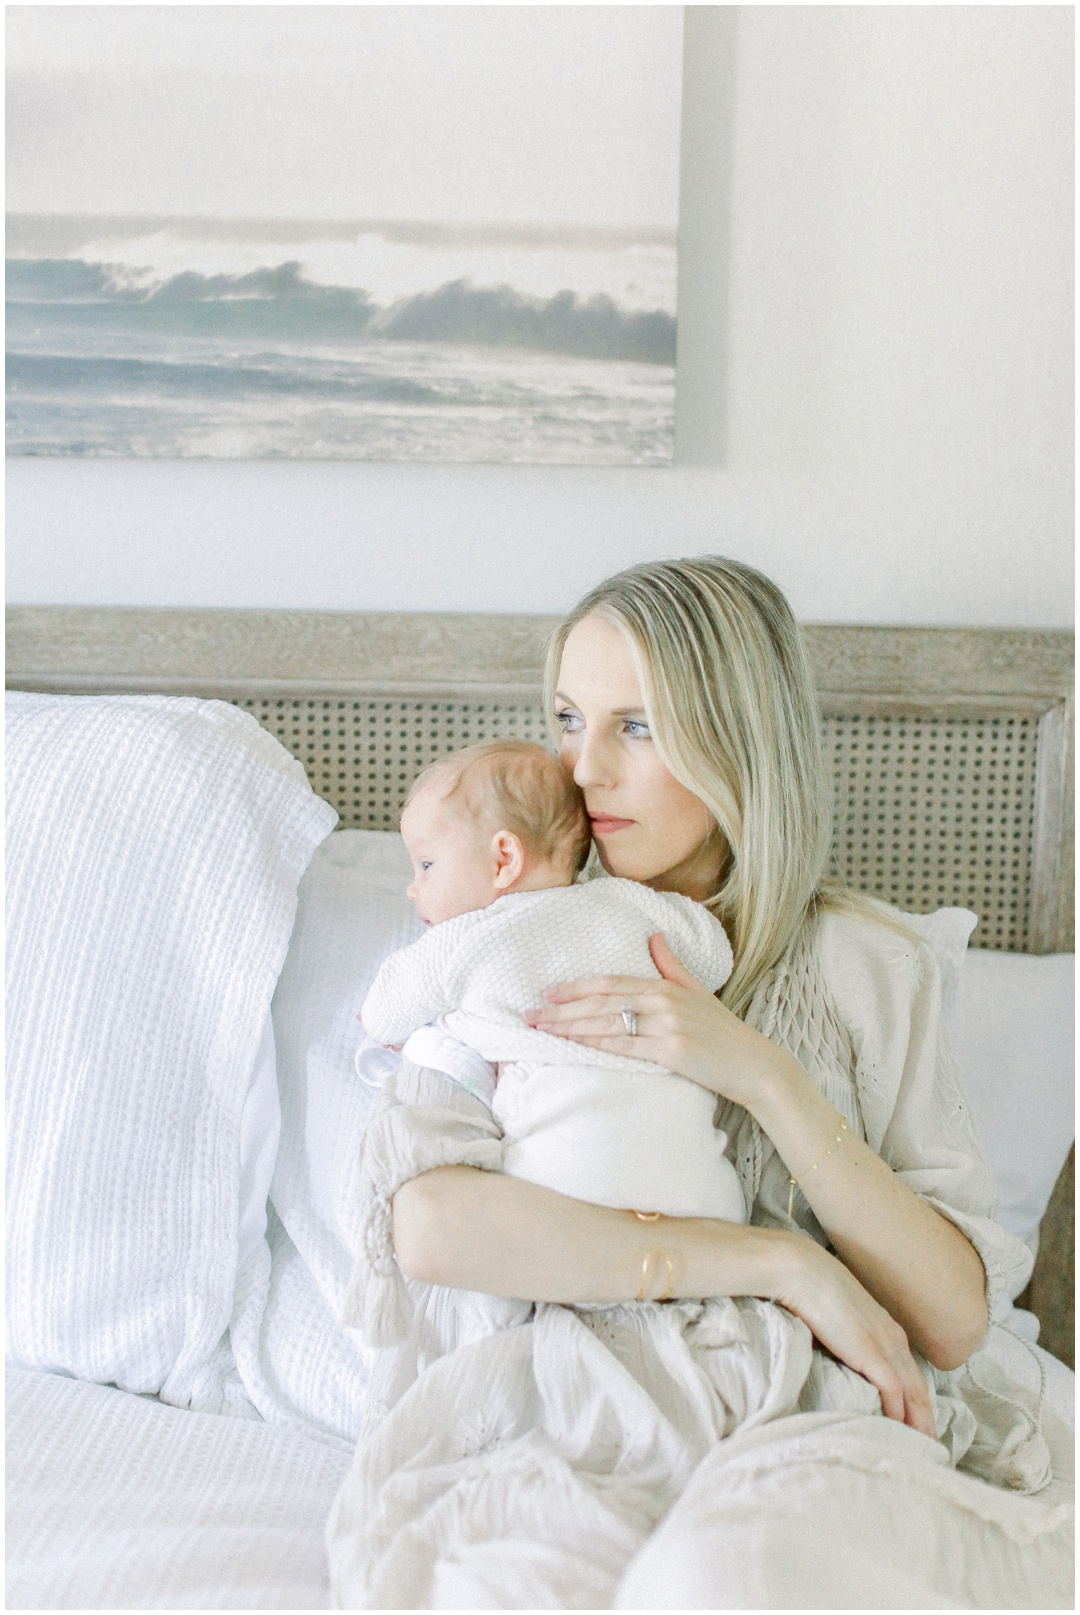 Newport_Beach_Newborn_Light_Airy_Natural_Photographer_Newport_Beach_Photographer_Orange_County_Family_Photographer_Cori_Kleckner_Photography_Newport_Beach_Photographer_Courtney_Roach__4084.jpg